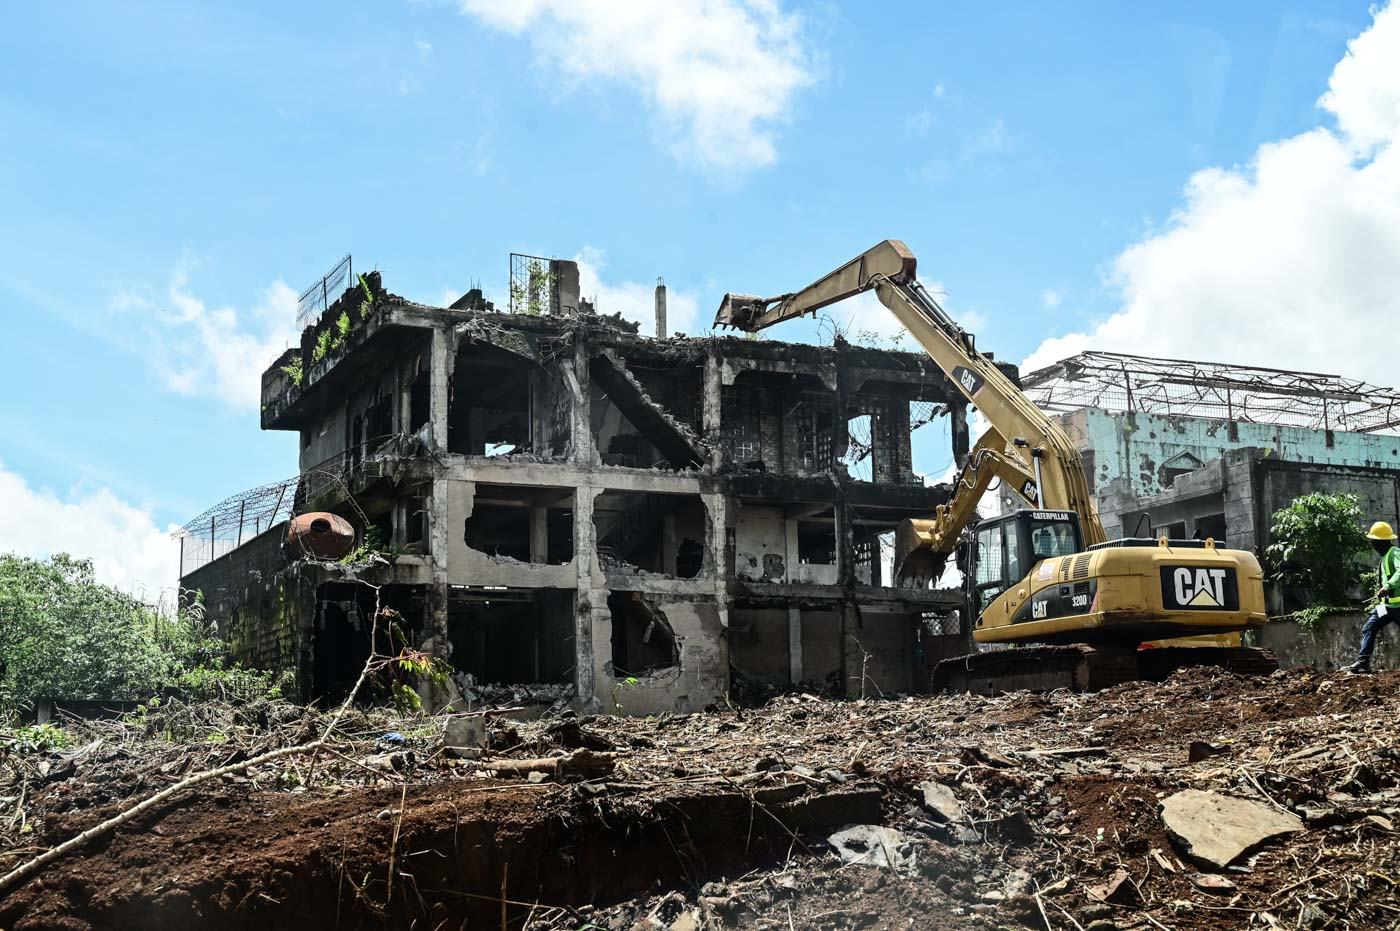 WE NEED TO DO MORE. Demolition site in the most affected area in Marawi City. Photo by Alecs Ongcal/ICRC